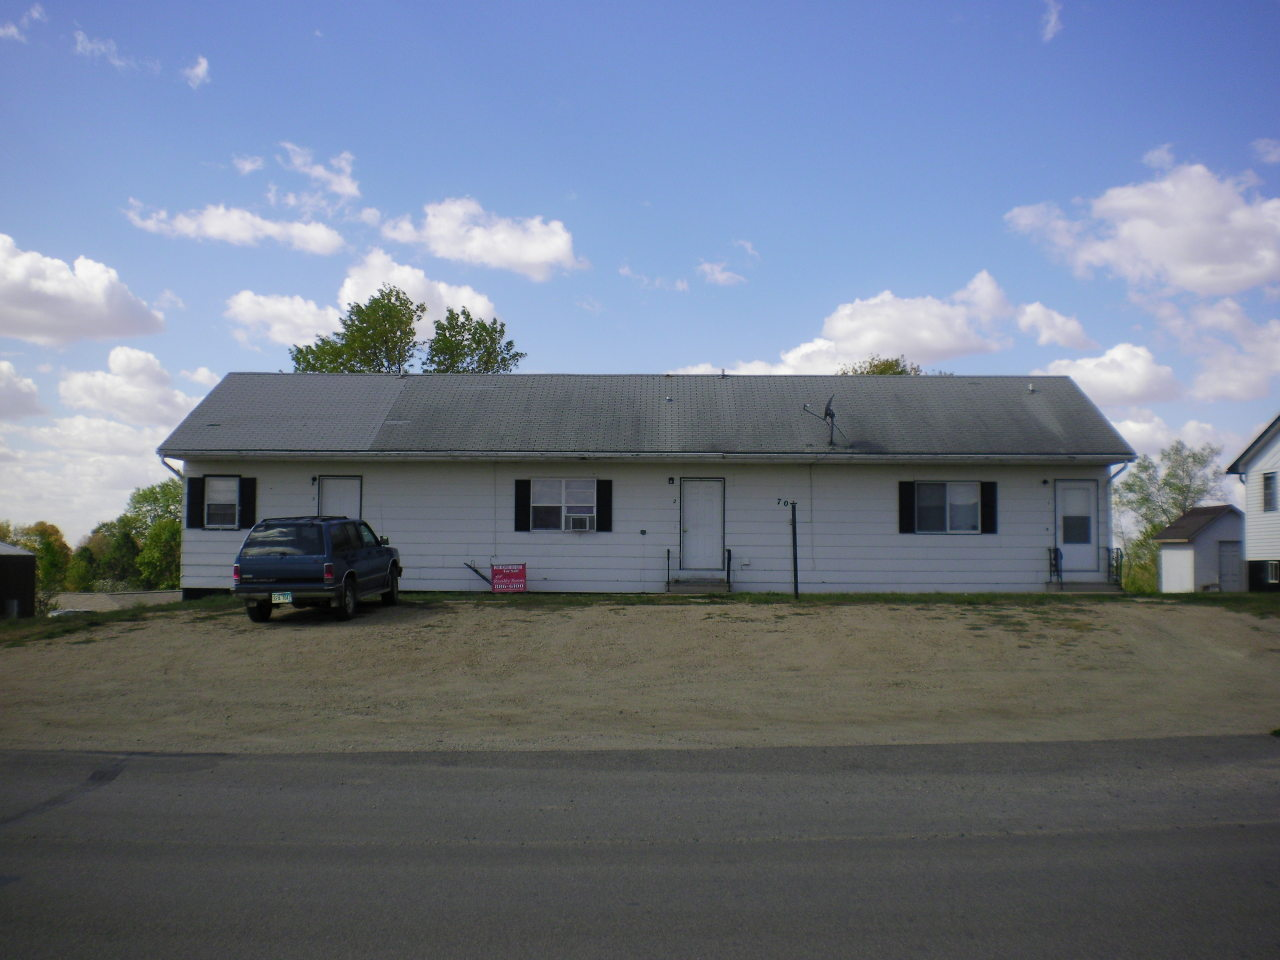 703 N 2nd Ave, Castlewood, SD 57223